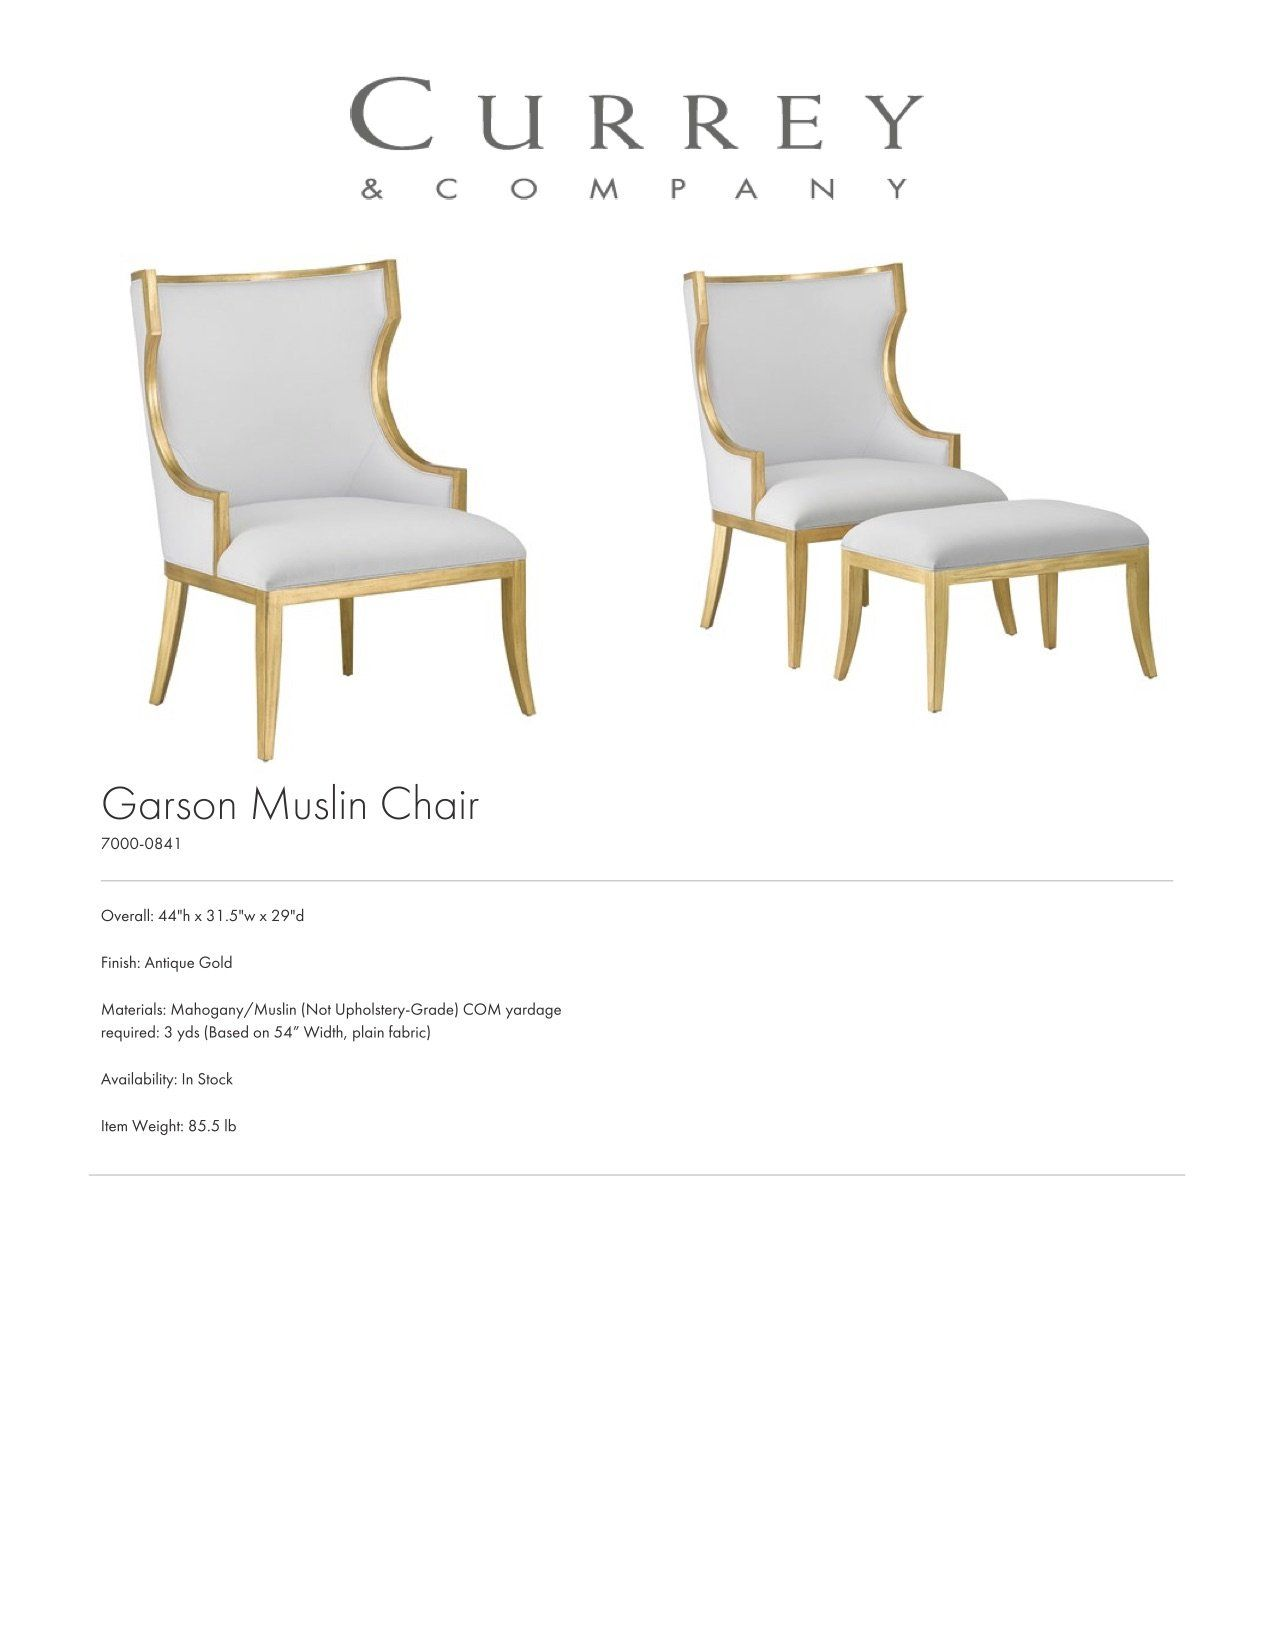 Garson Muslin Chair in 10  Chair, Design, Home decor